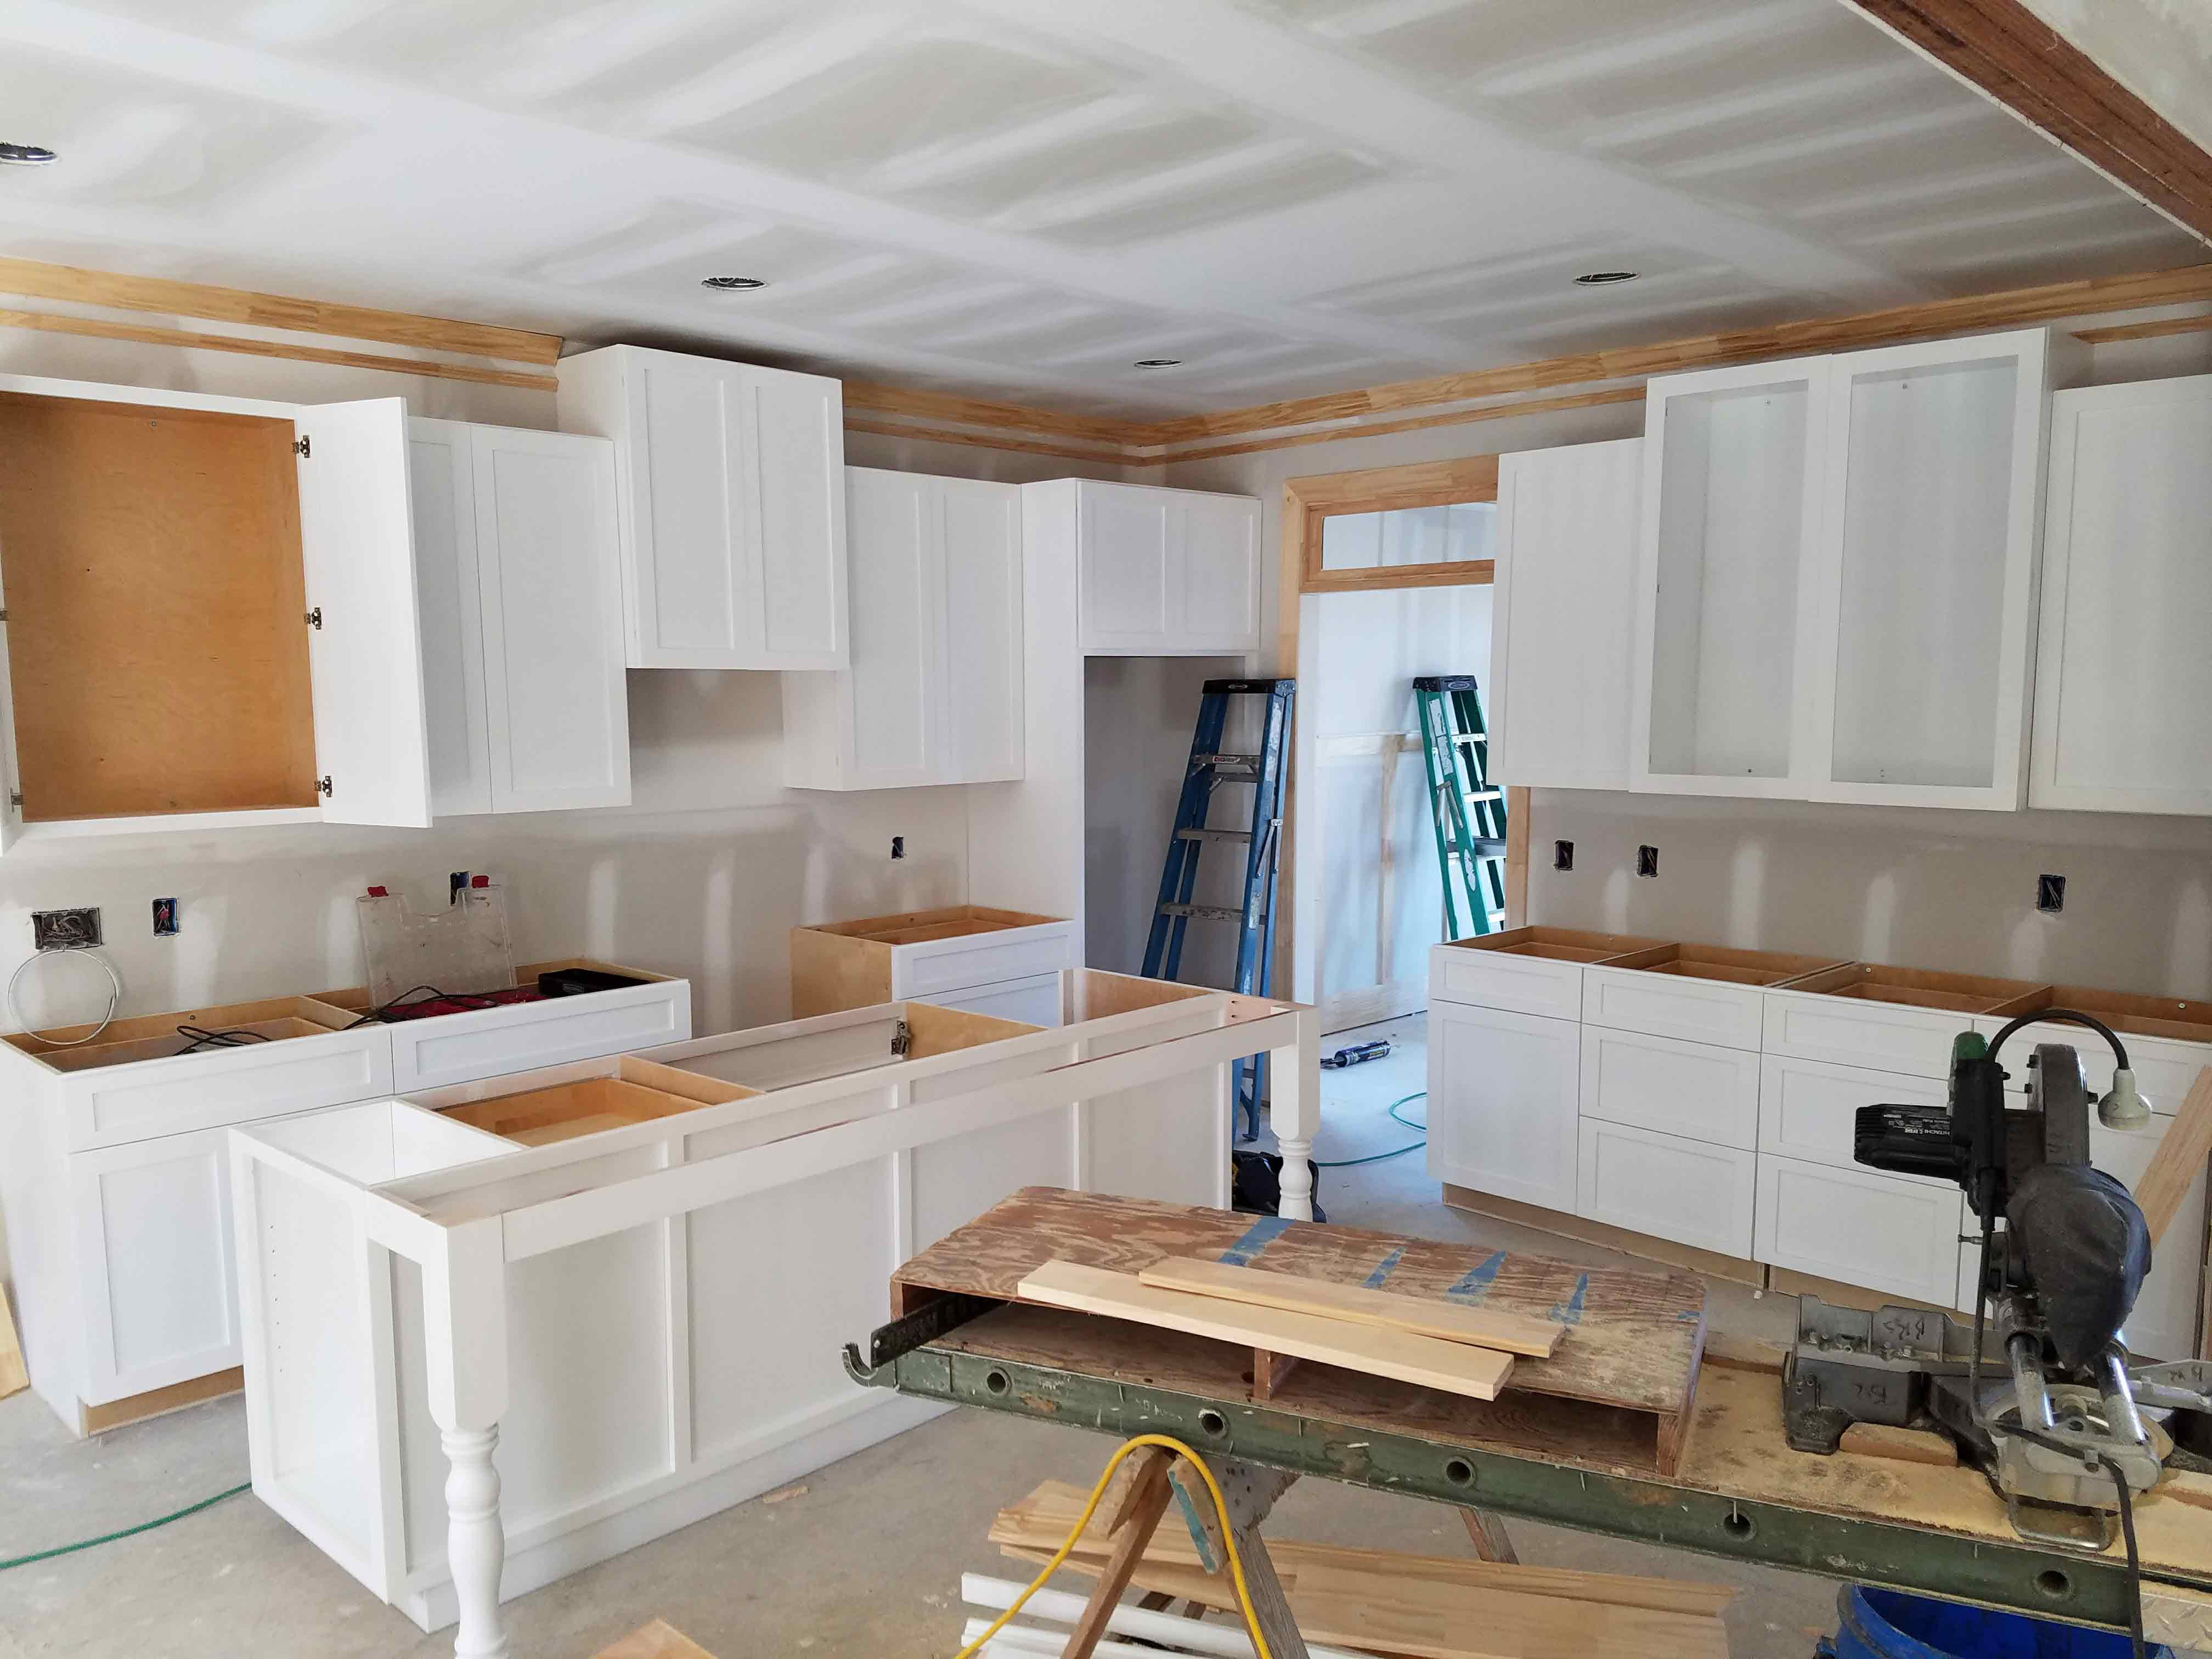 Kitchen Cabinet Installation Cost Edgewood Cabinetry Kitchen Cabinets Raleigh Nc